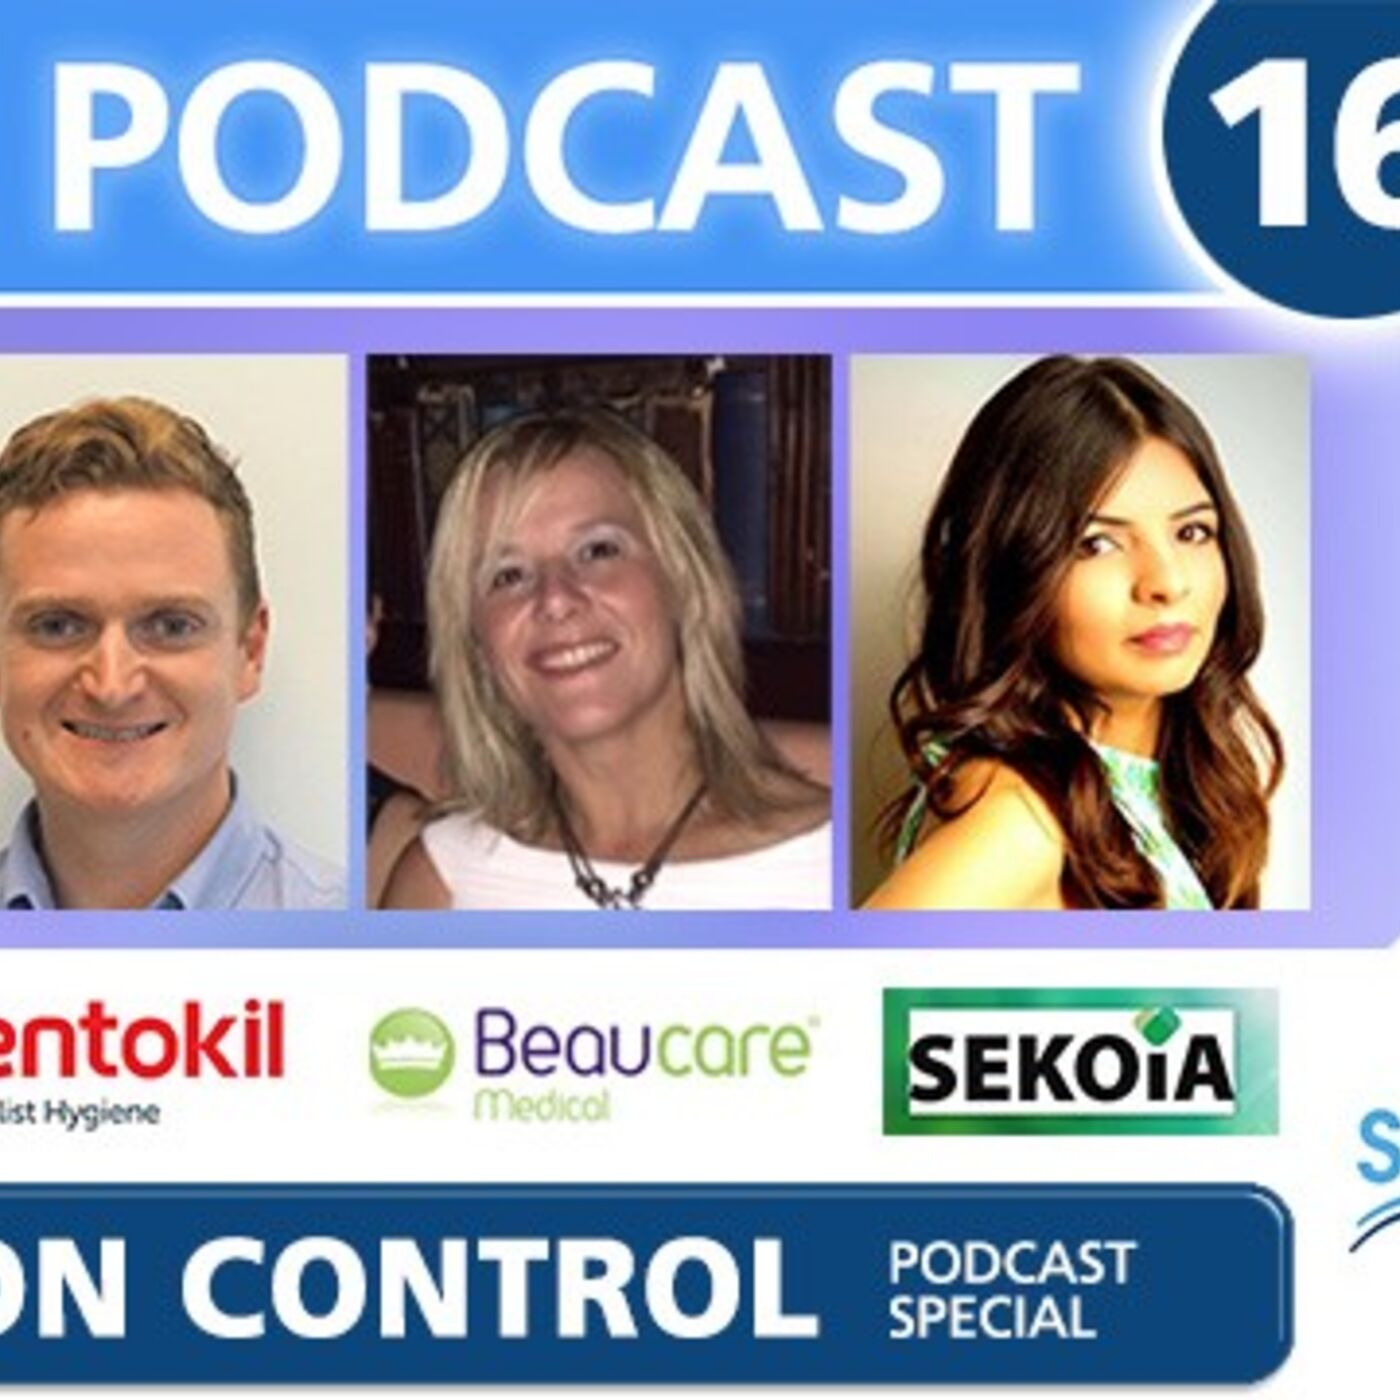 Care Home Management COVID-19 Infection Control podcast special roundtable